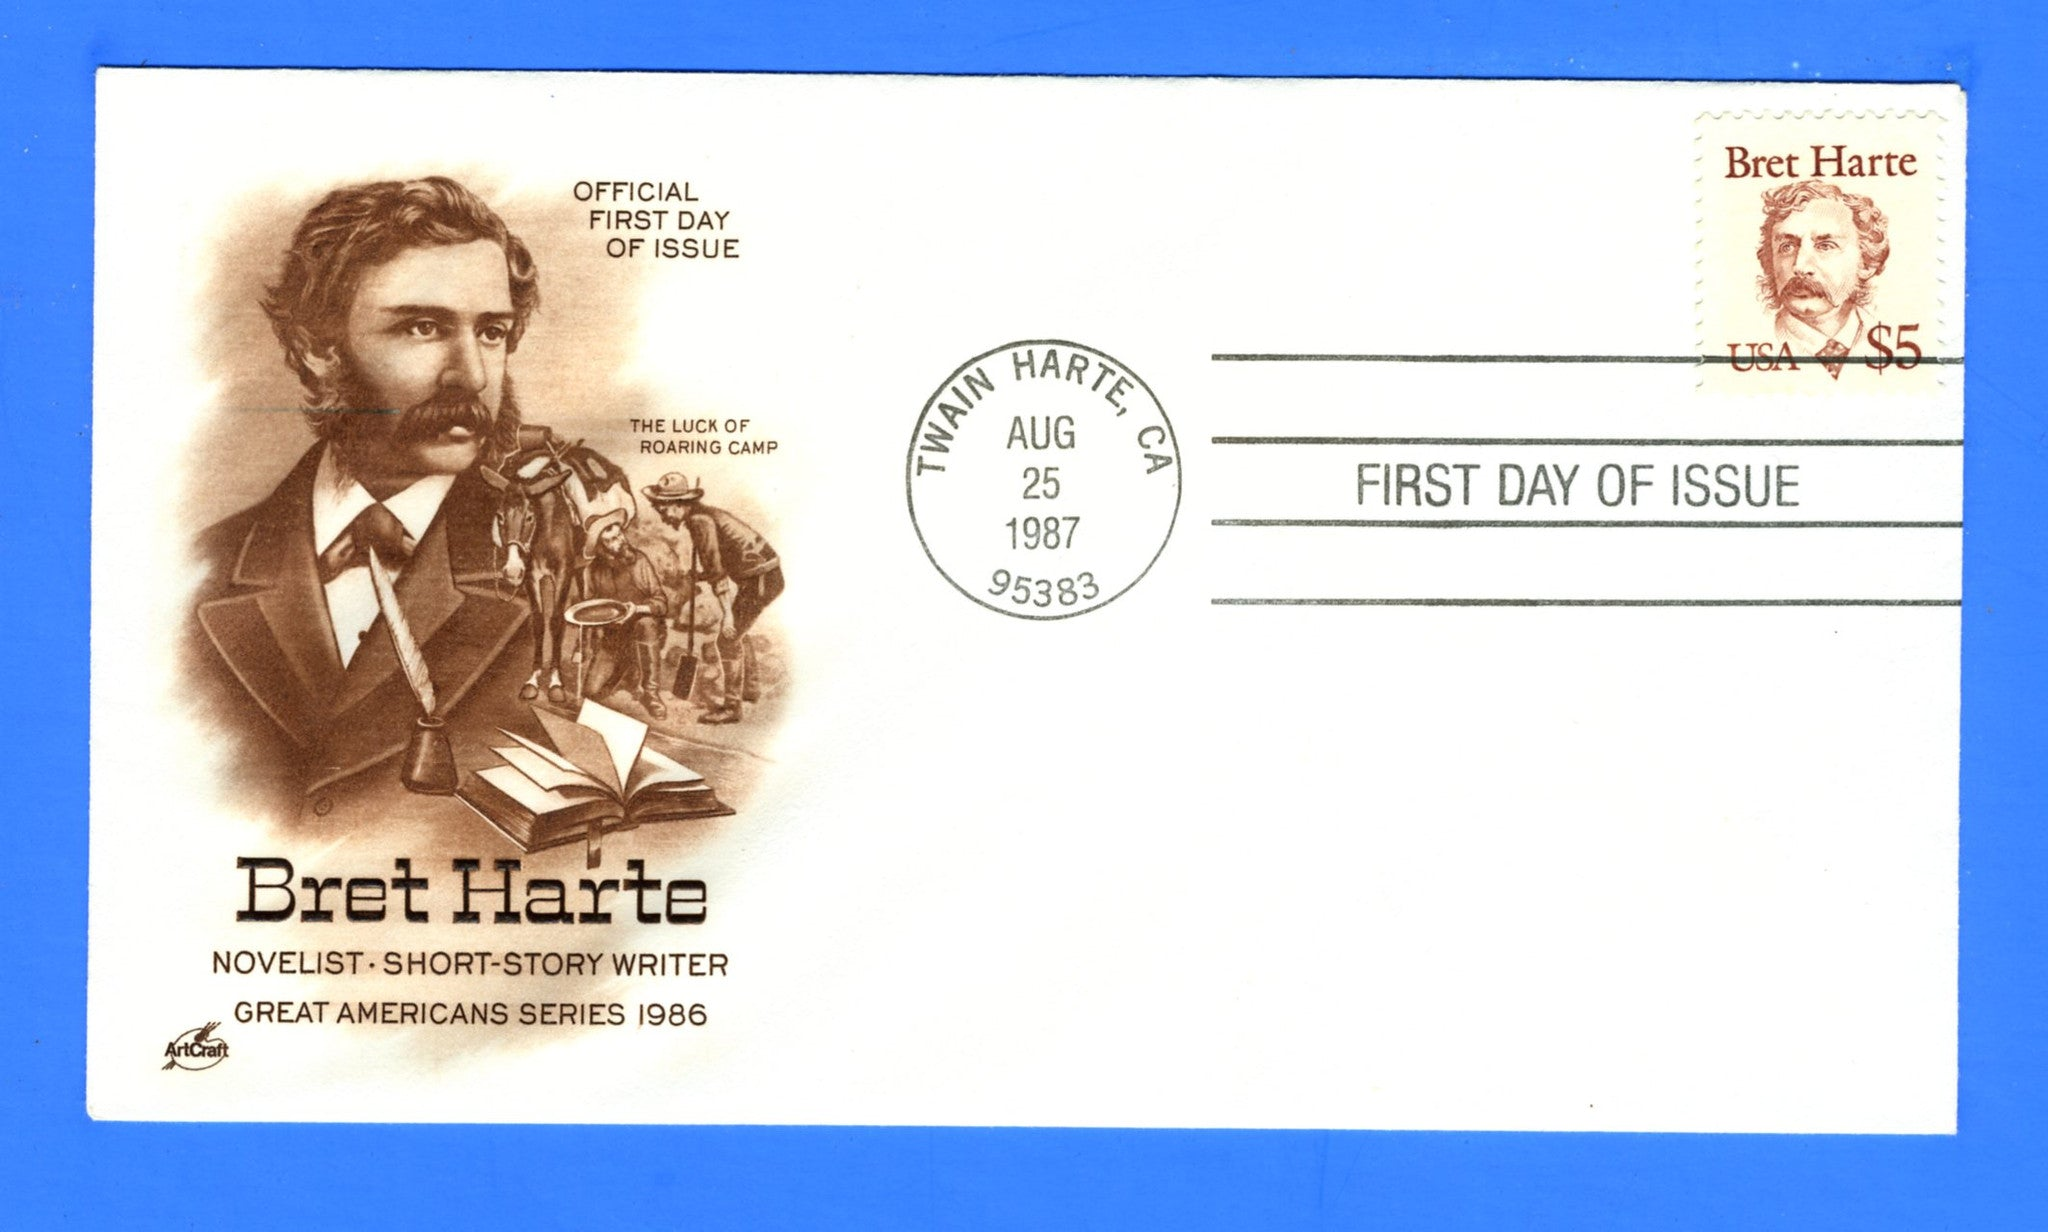 Scott 2196 $5 Bret Harte First Day Cover by Artcraft